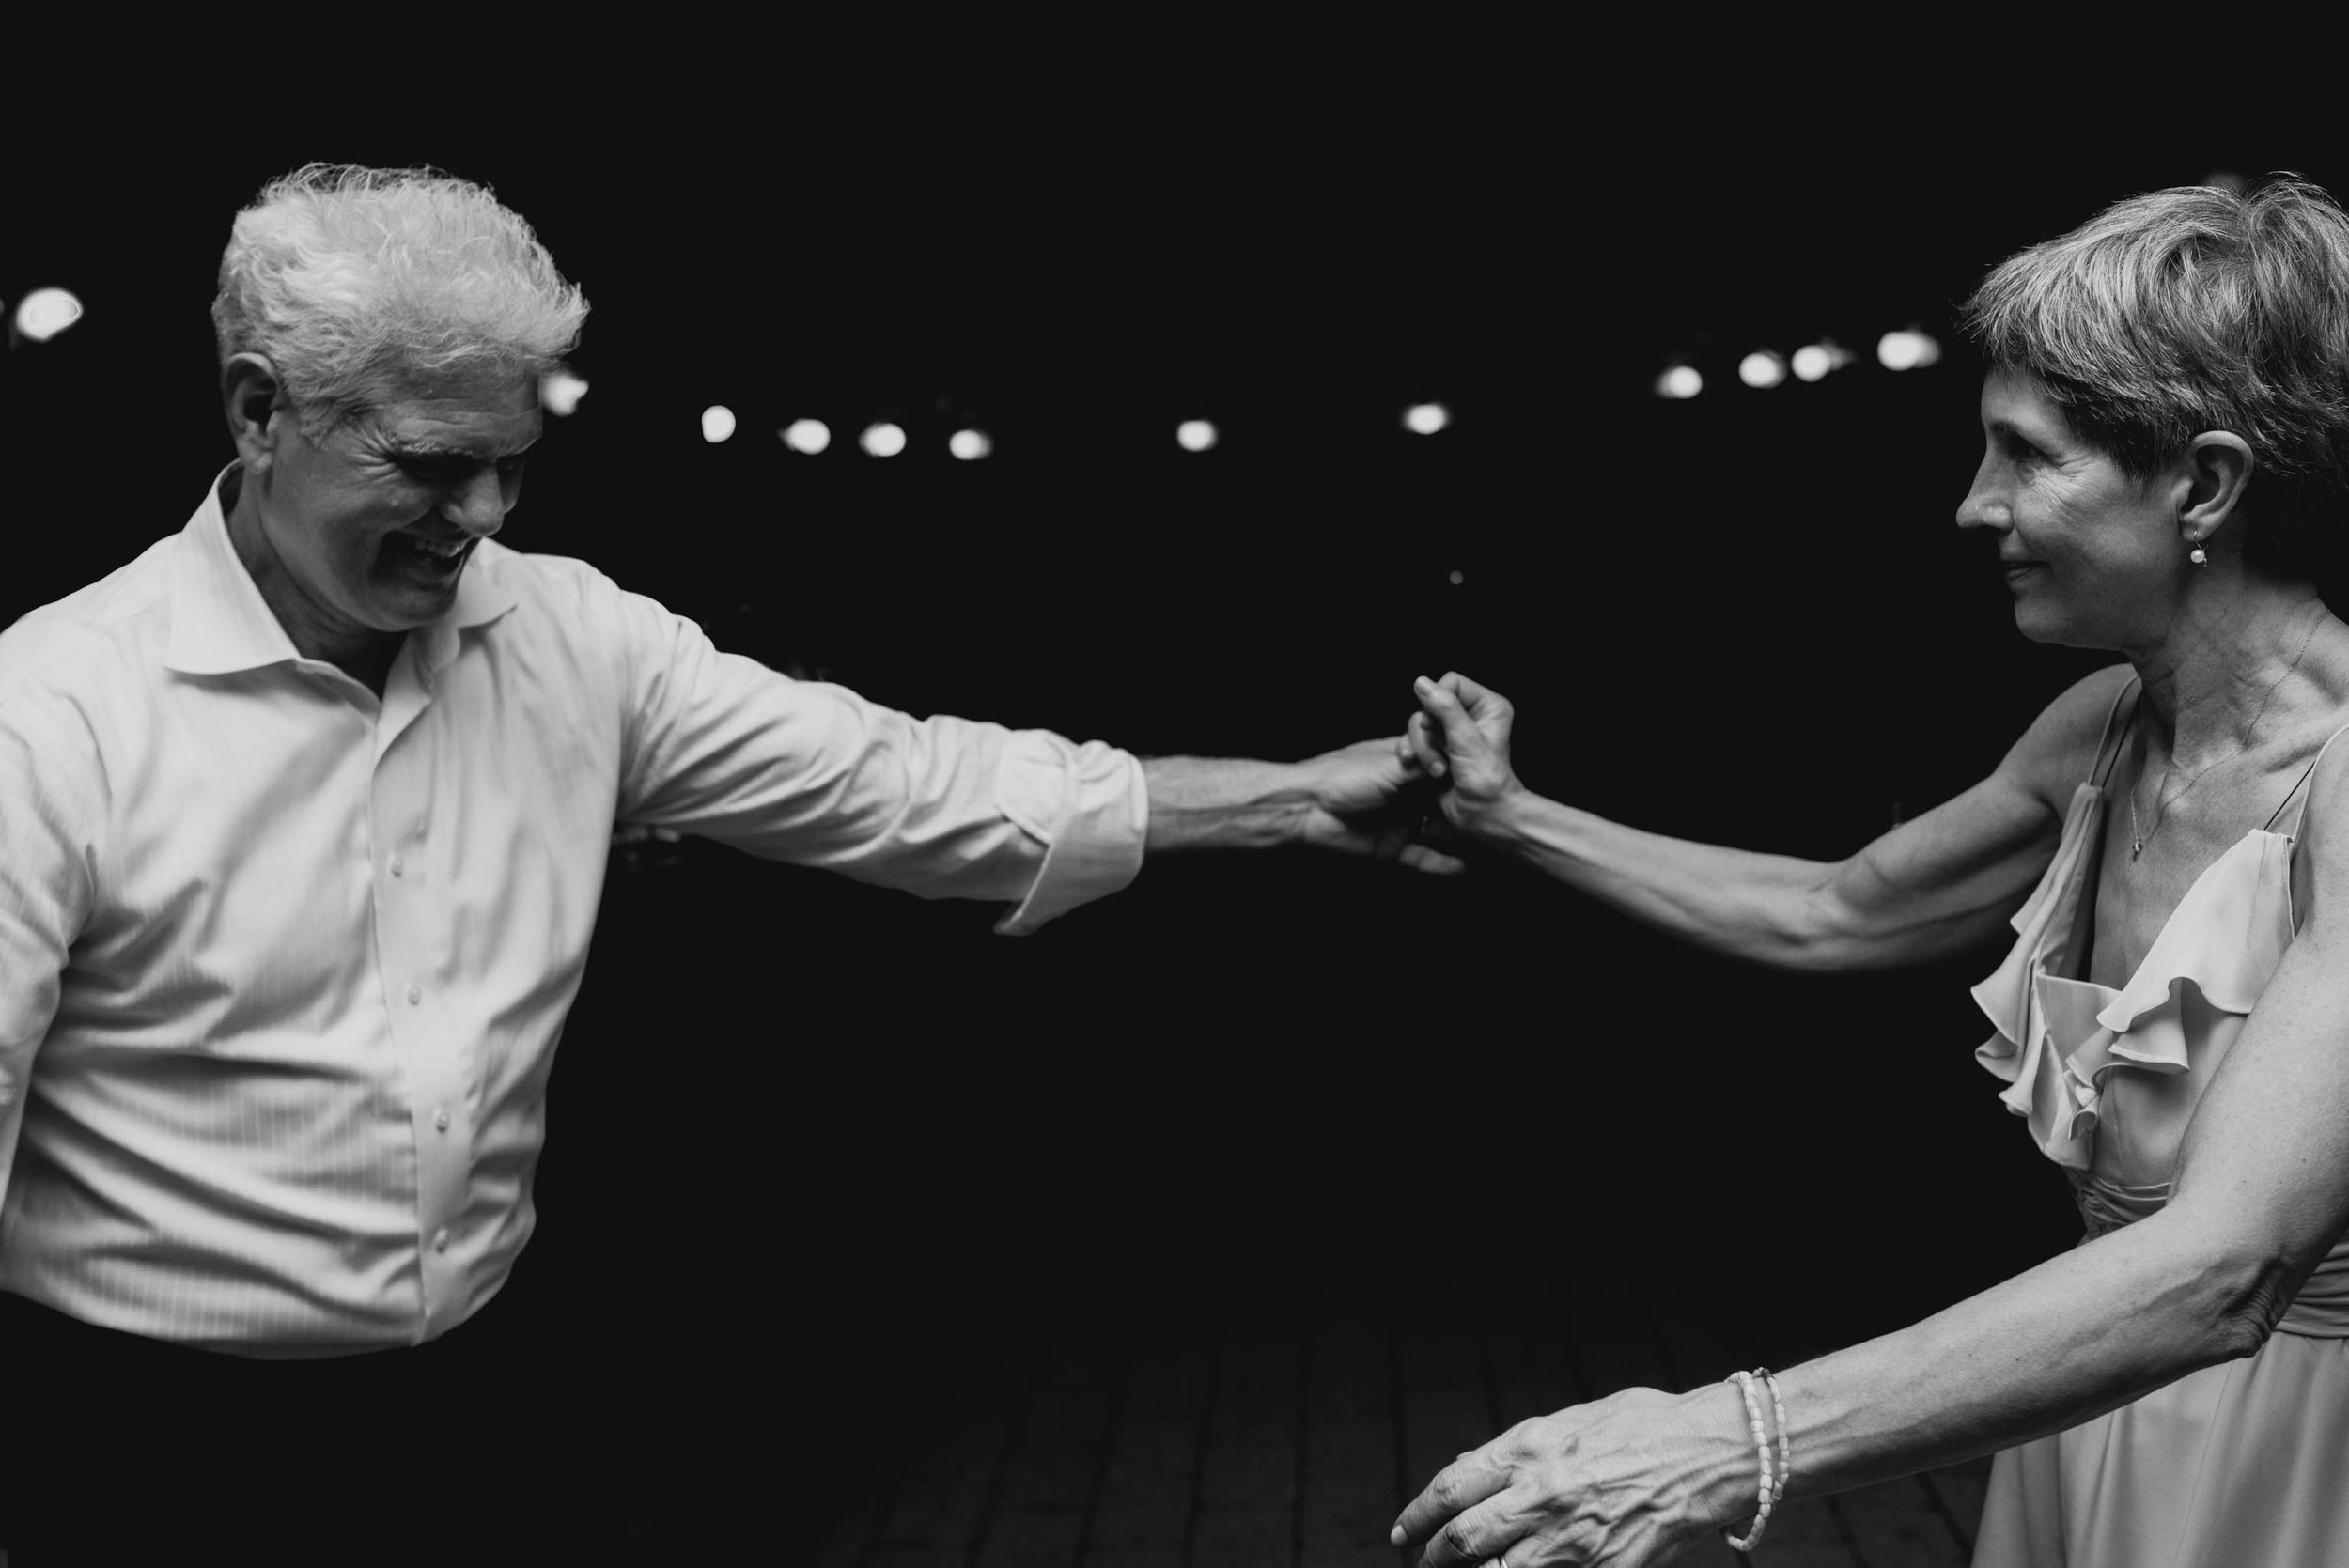 bride's mom and dad dancing during reception at this Jiddi Space and Courtyard Wedding at Sitti Restaurant